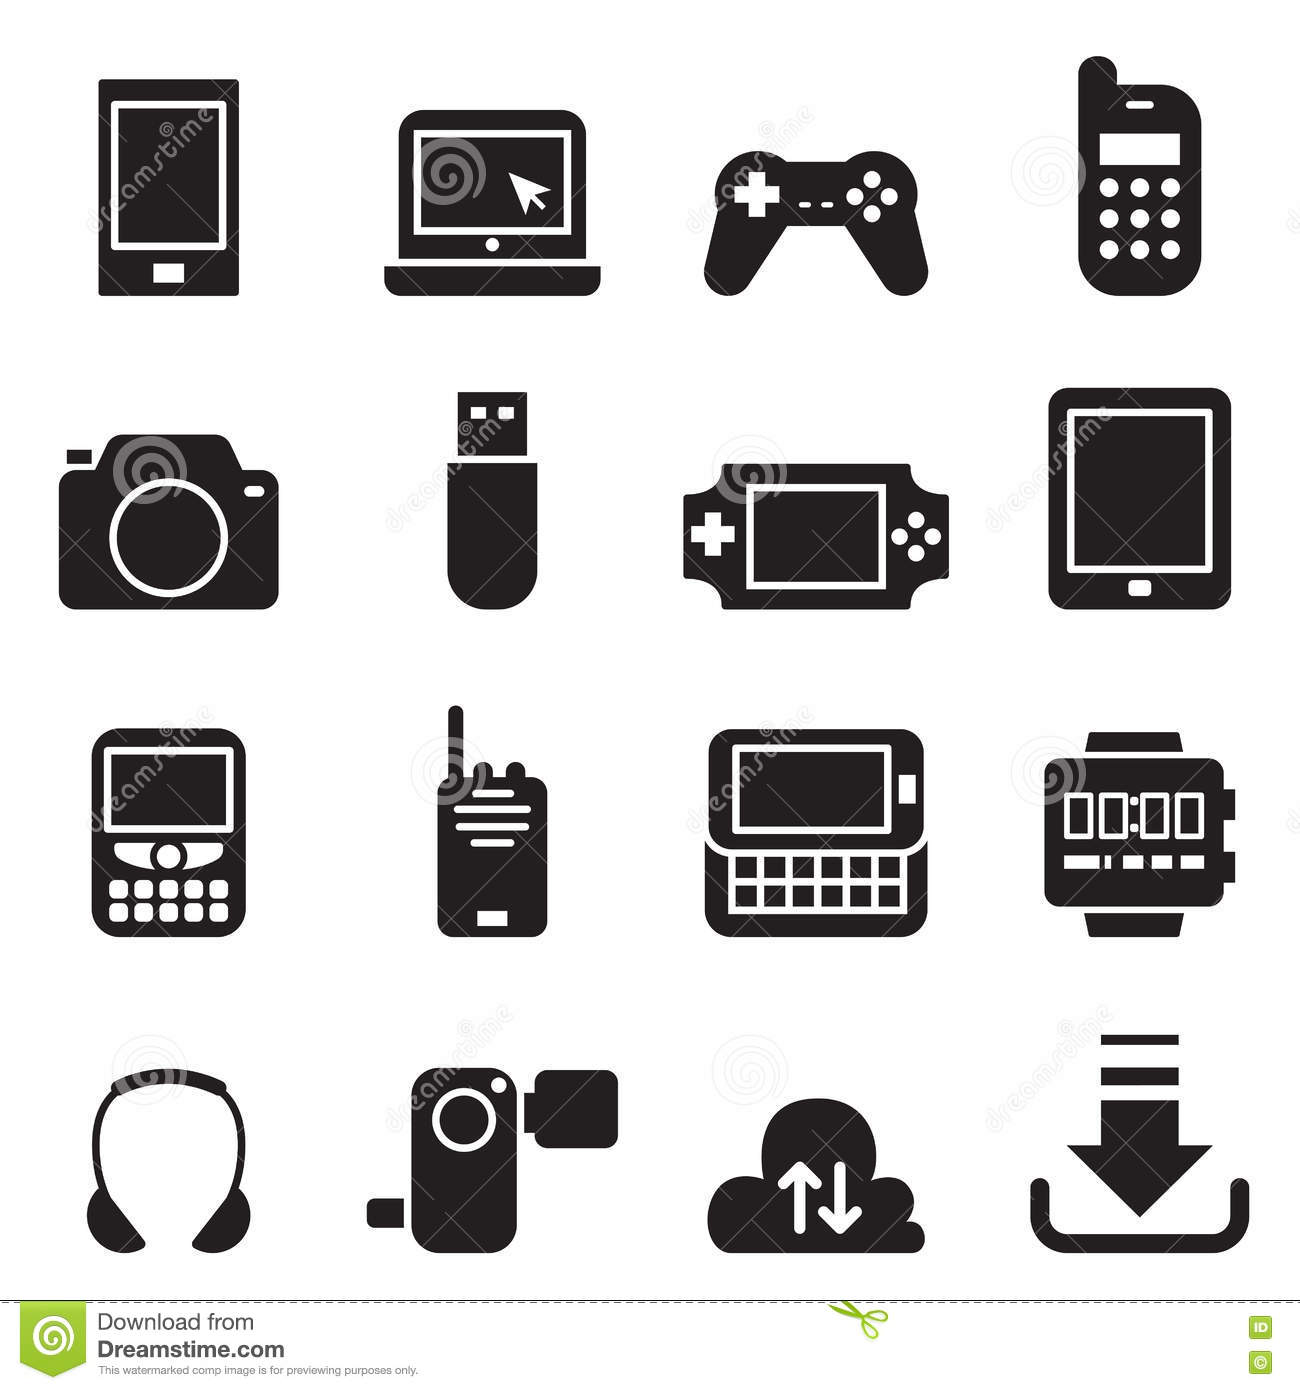 Mobile Device icons Set Vector illustration